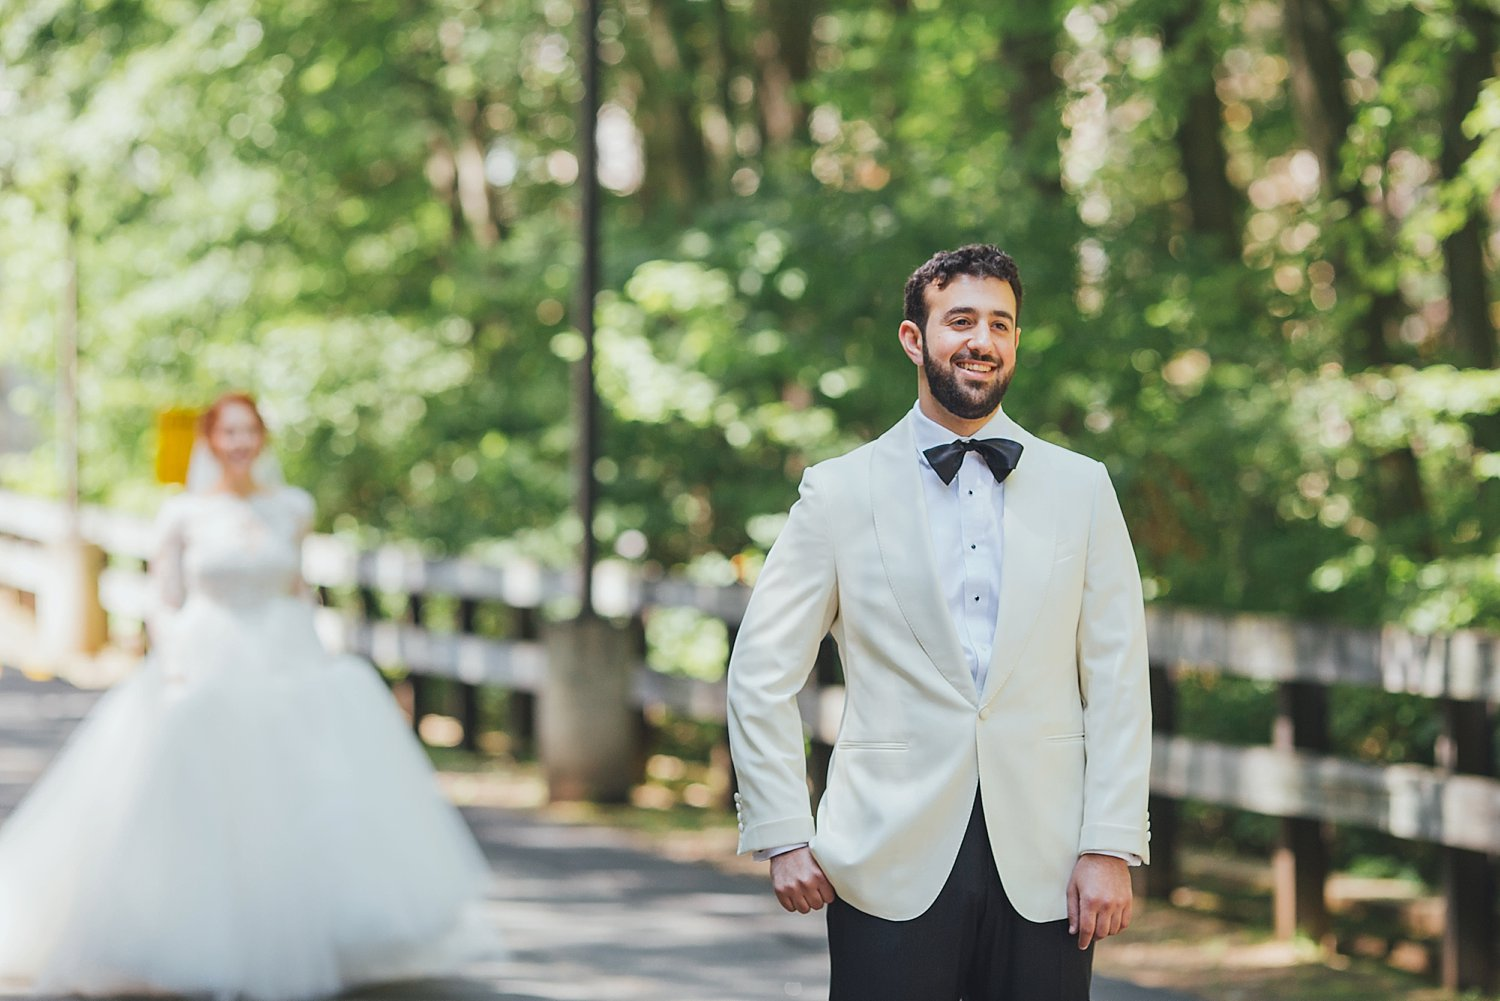 nyc-wedding-photography-nj-tri-state-cinematography-intothestory-by-moo-jae_0278.jpg